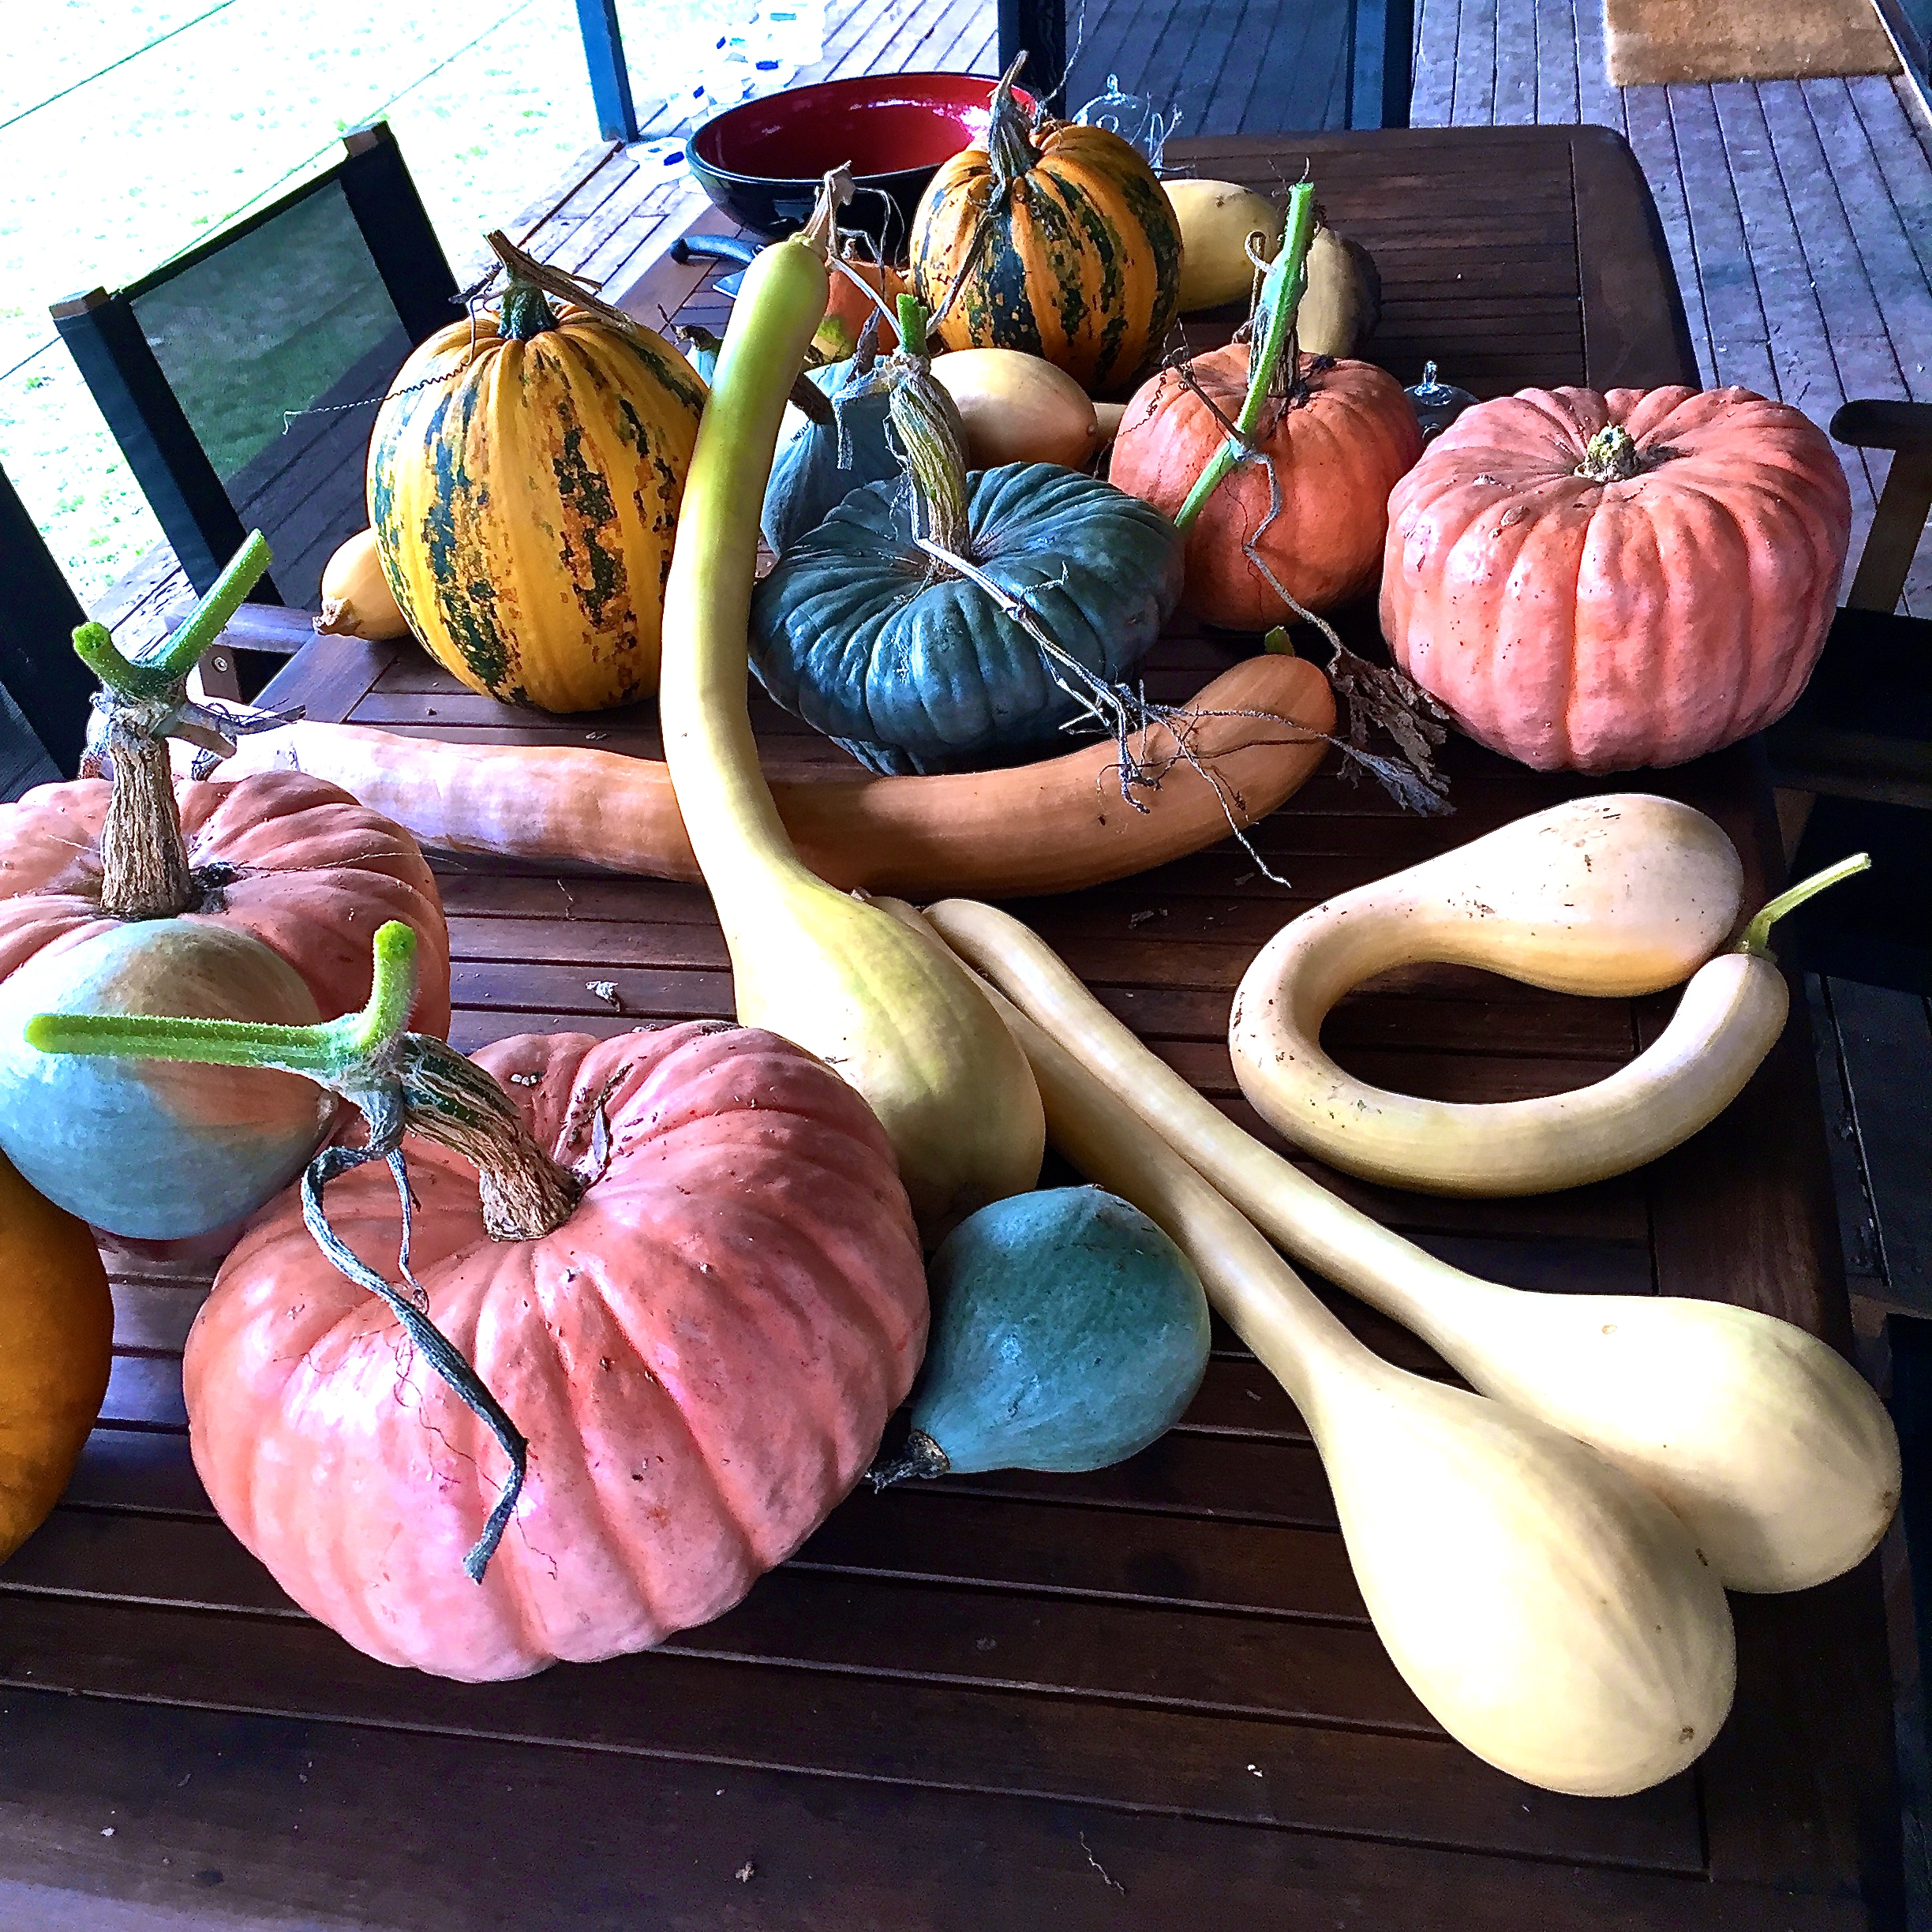 pumpkins galore at the end of summer!